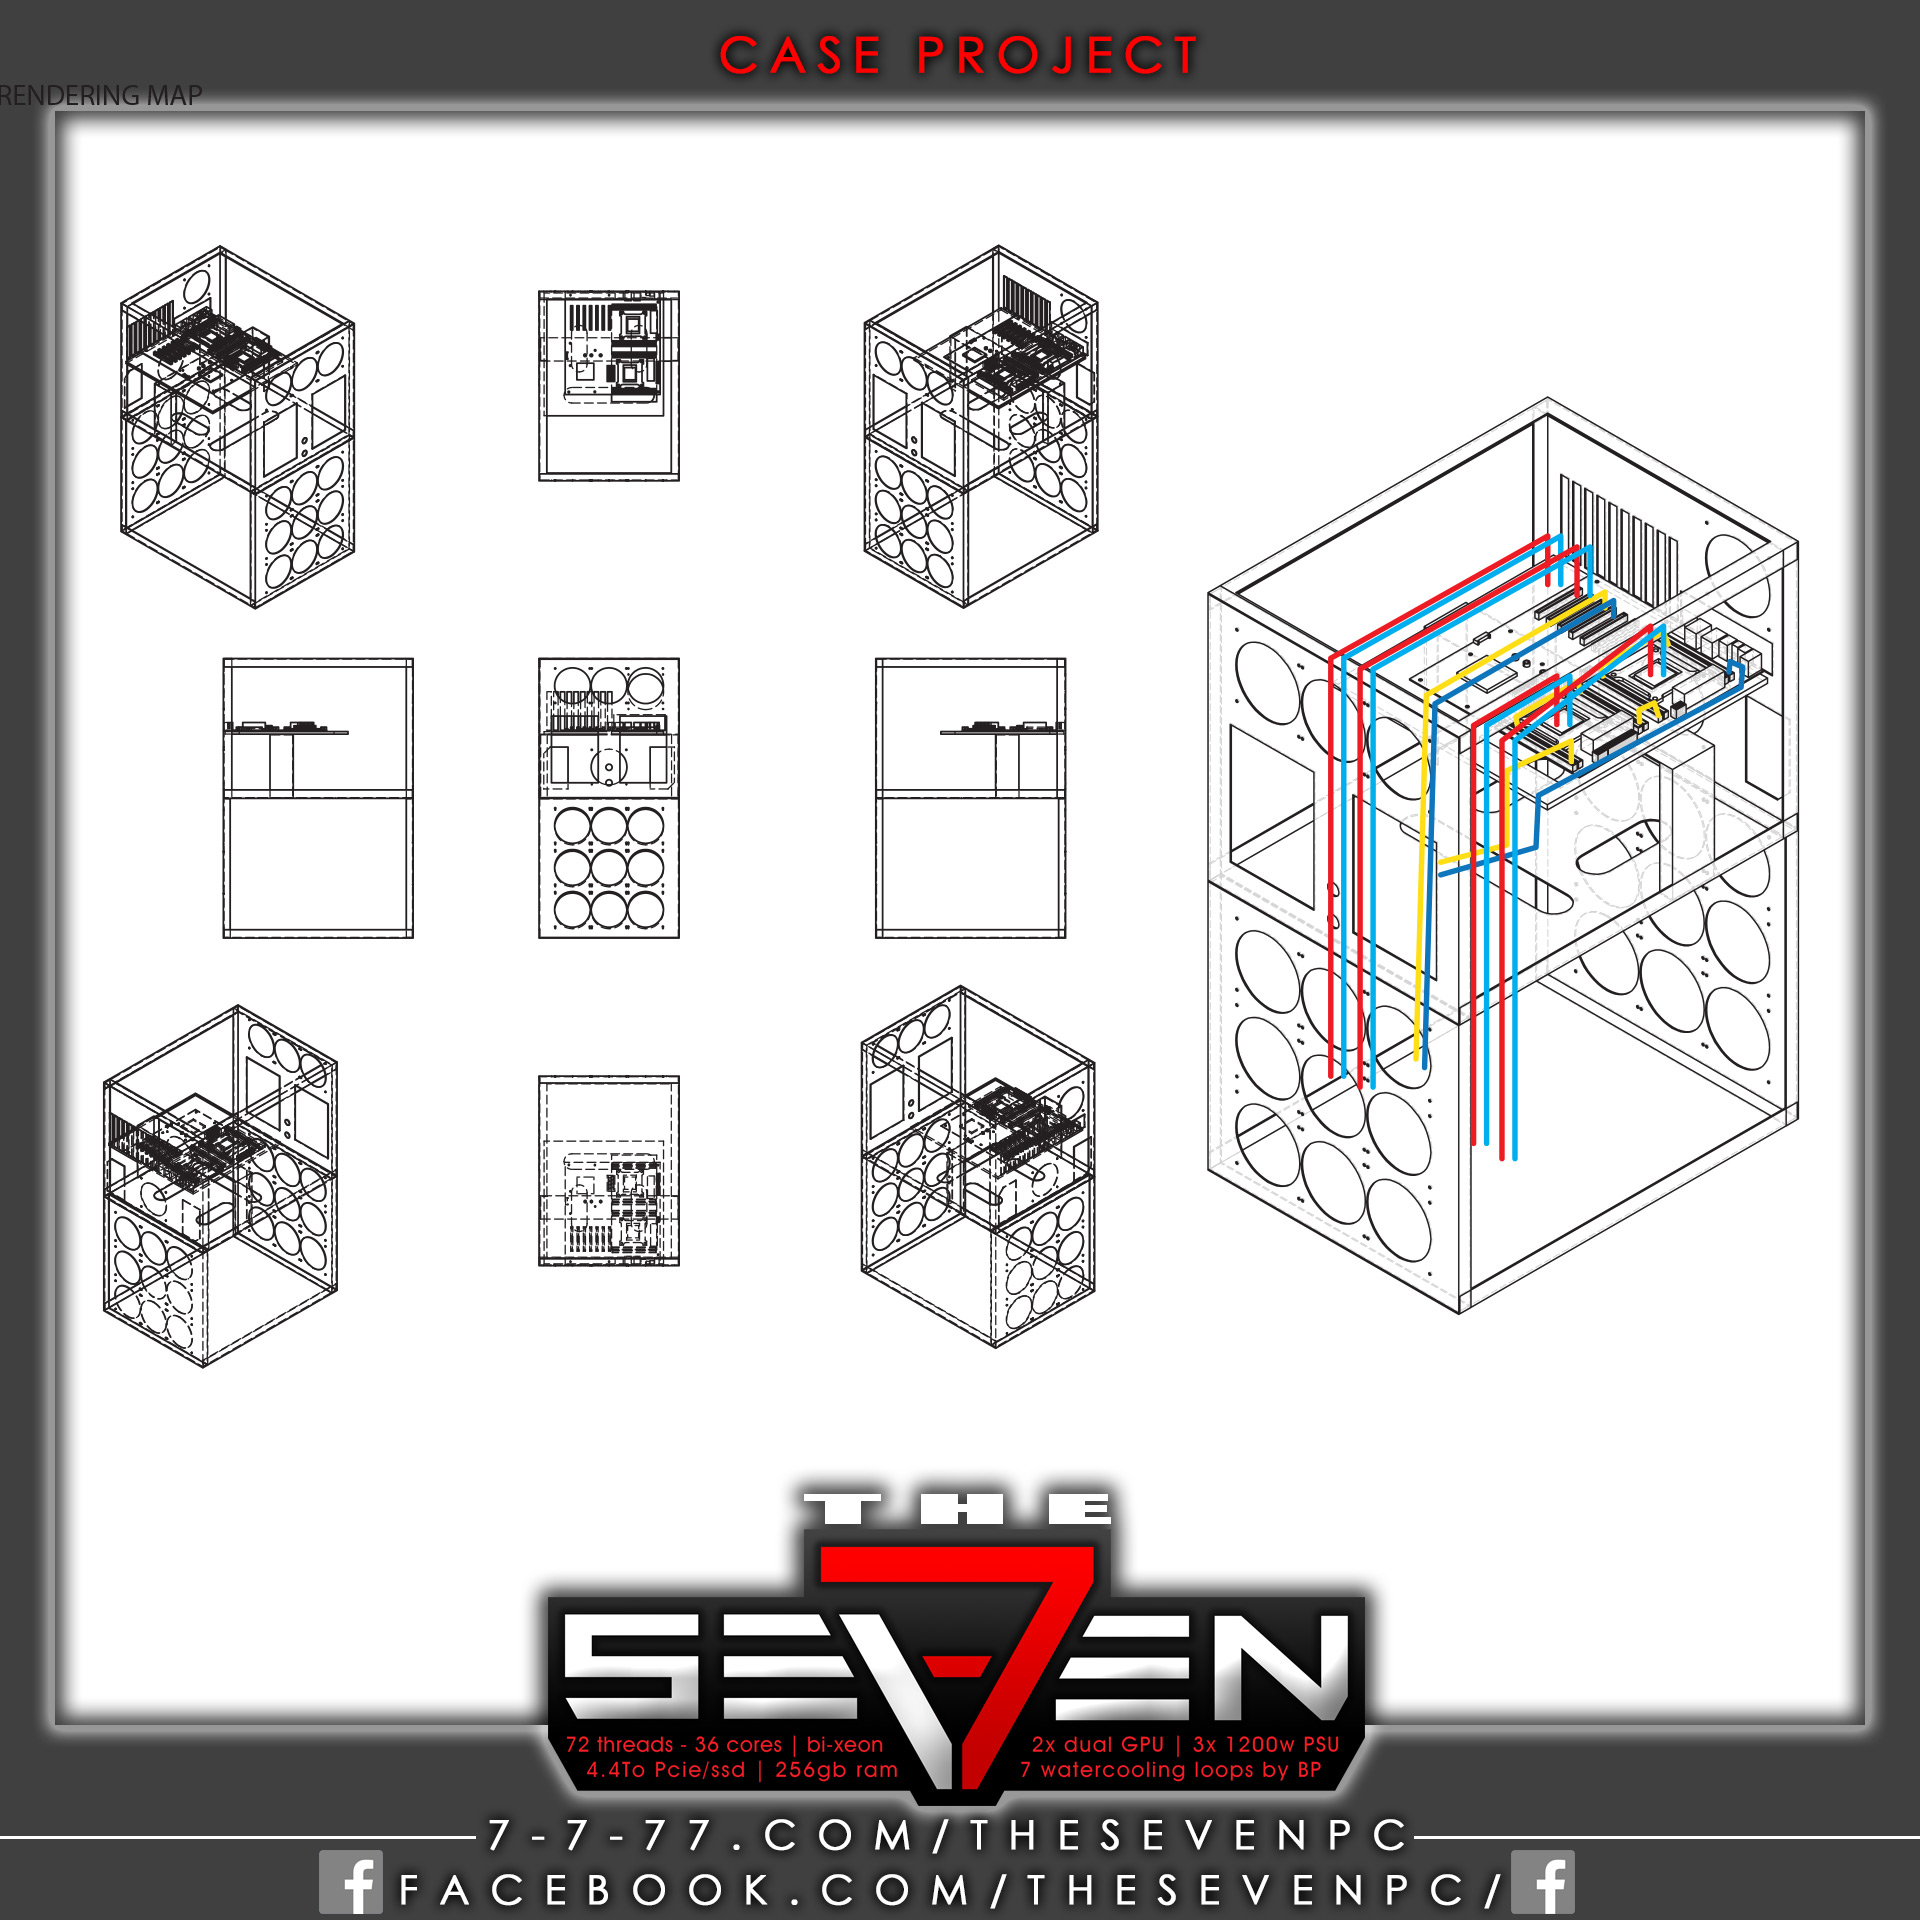 http://7-7-77.com/thesevenpc/pic/the-seven-pc-watercooling-map-01.jpg